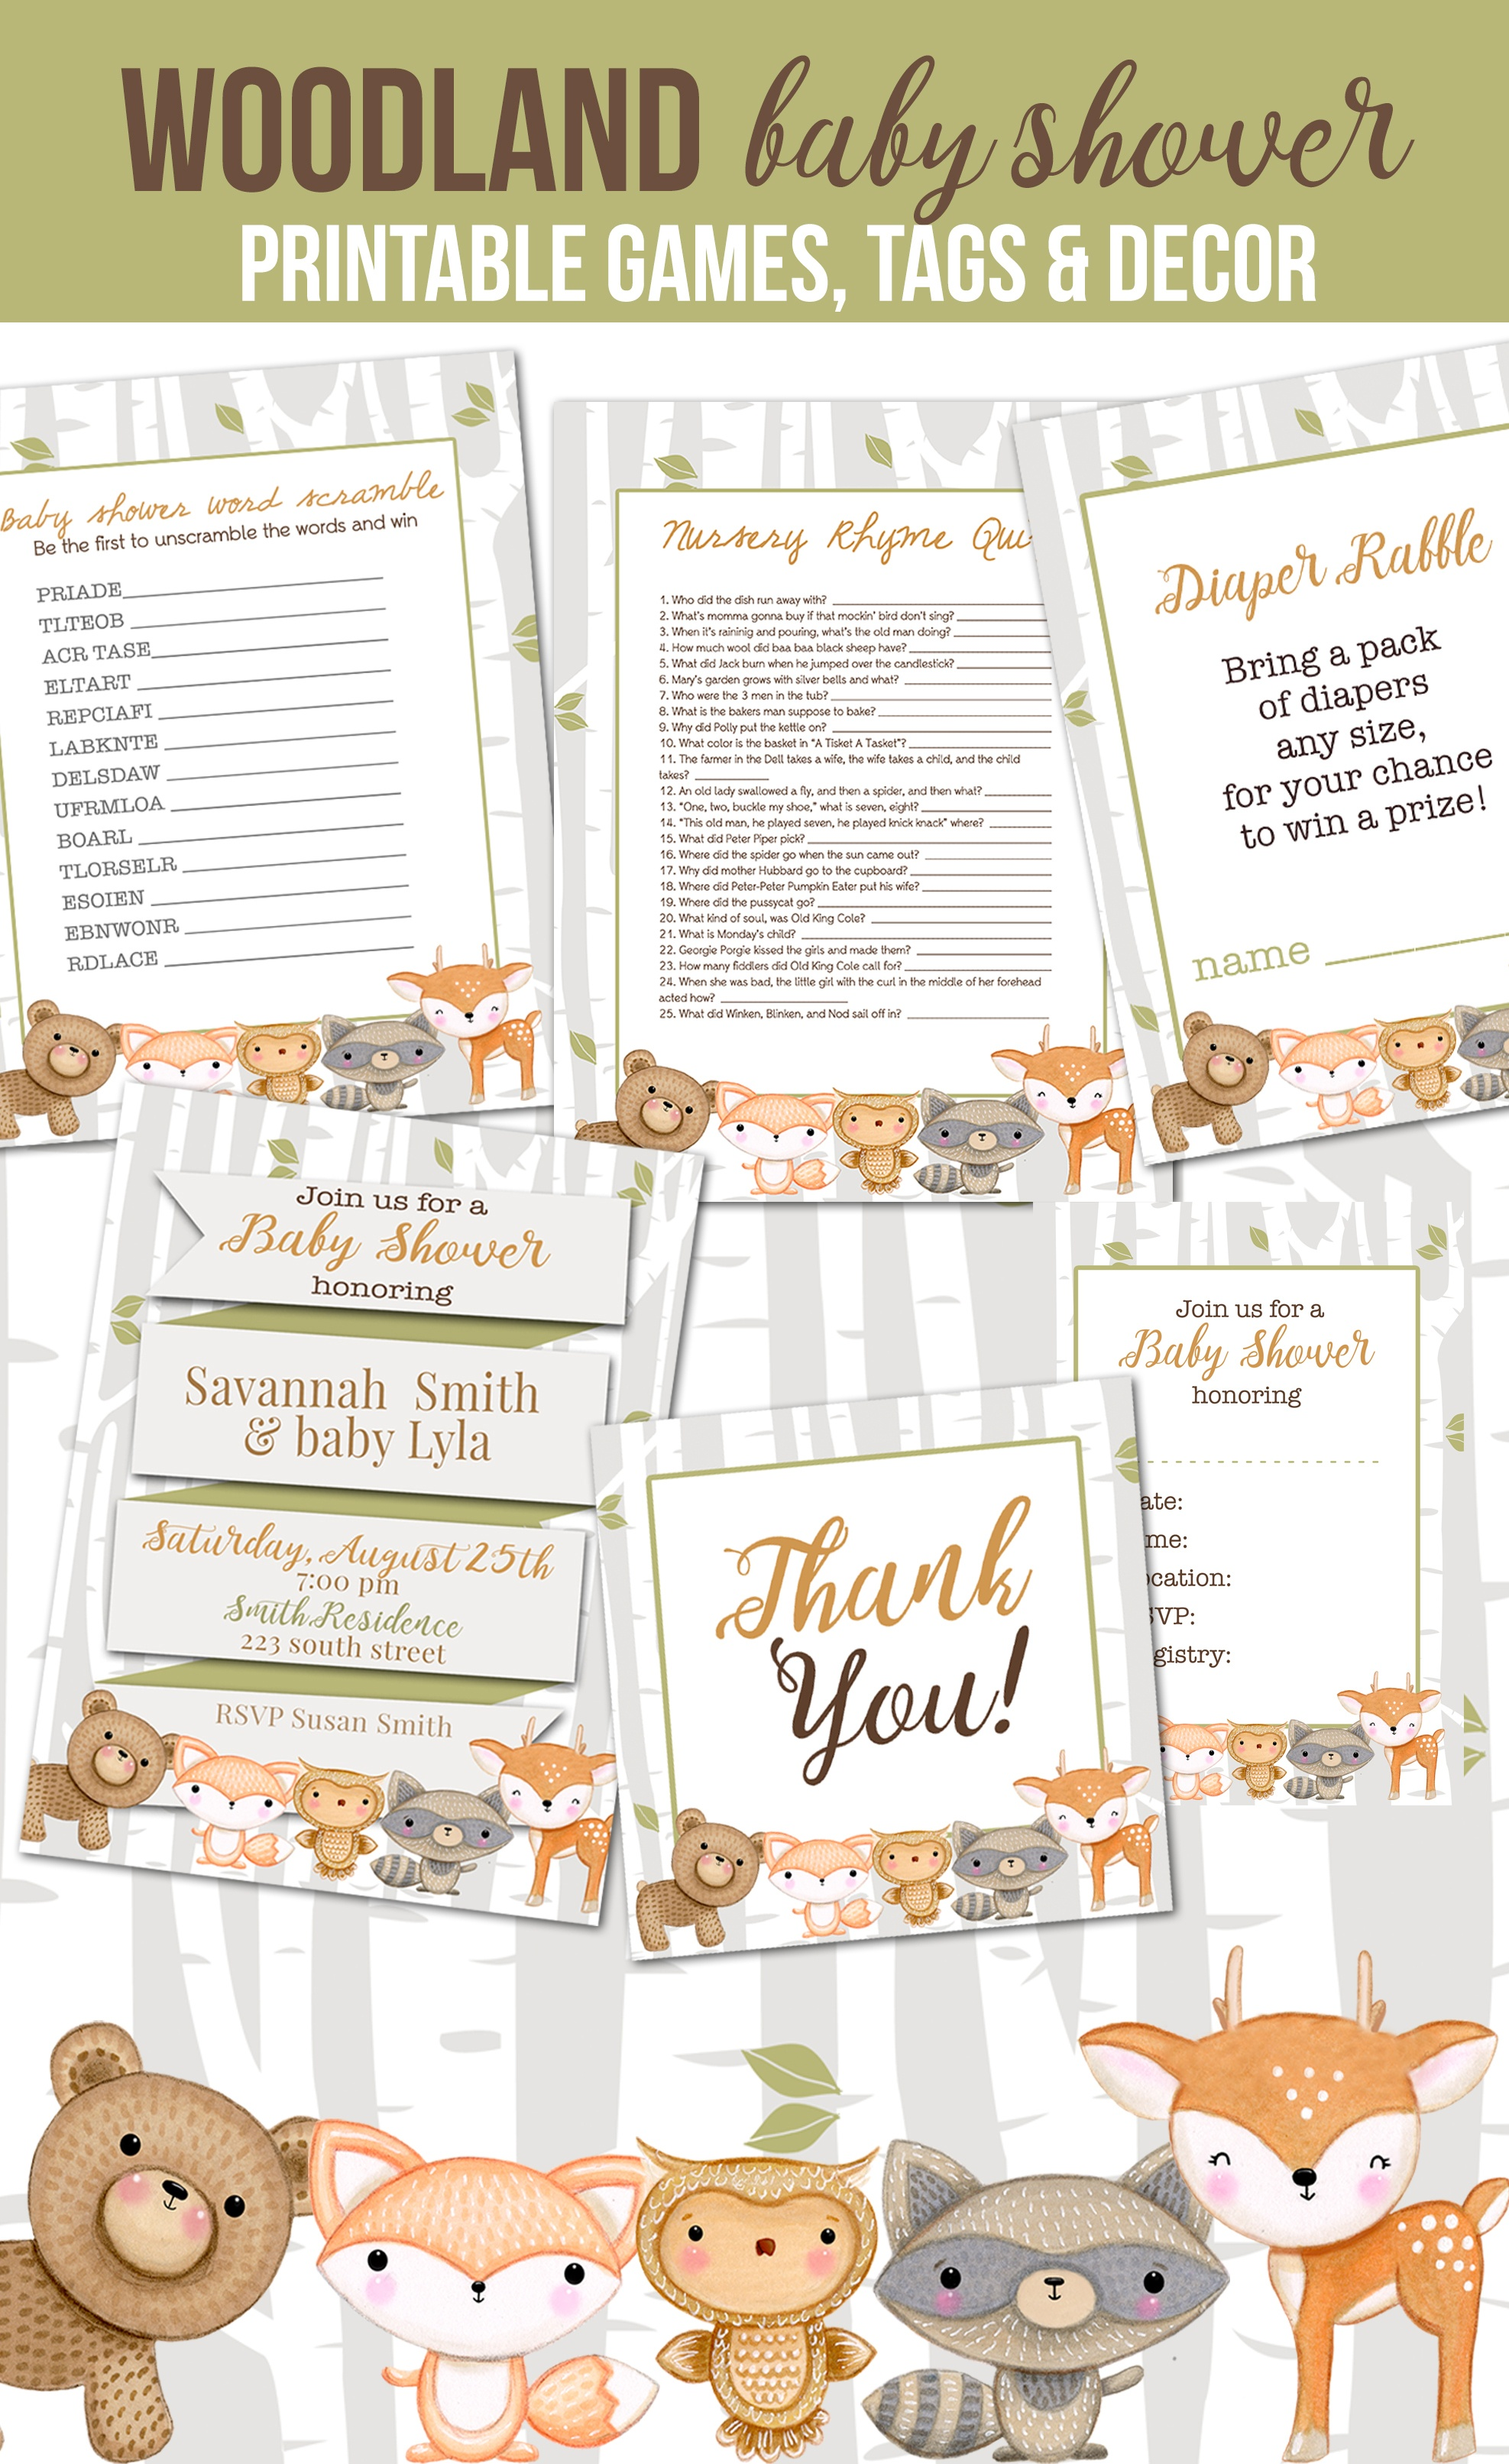 5 Darling Woodland Animal Baby Shower Free Printables And Ideas For - Woodland Baby Shower Games Free Printables